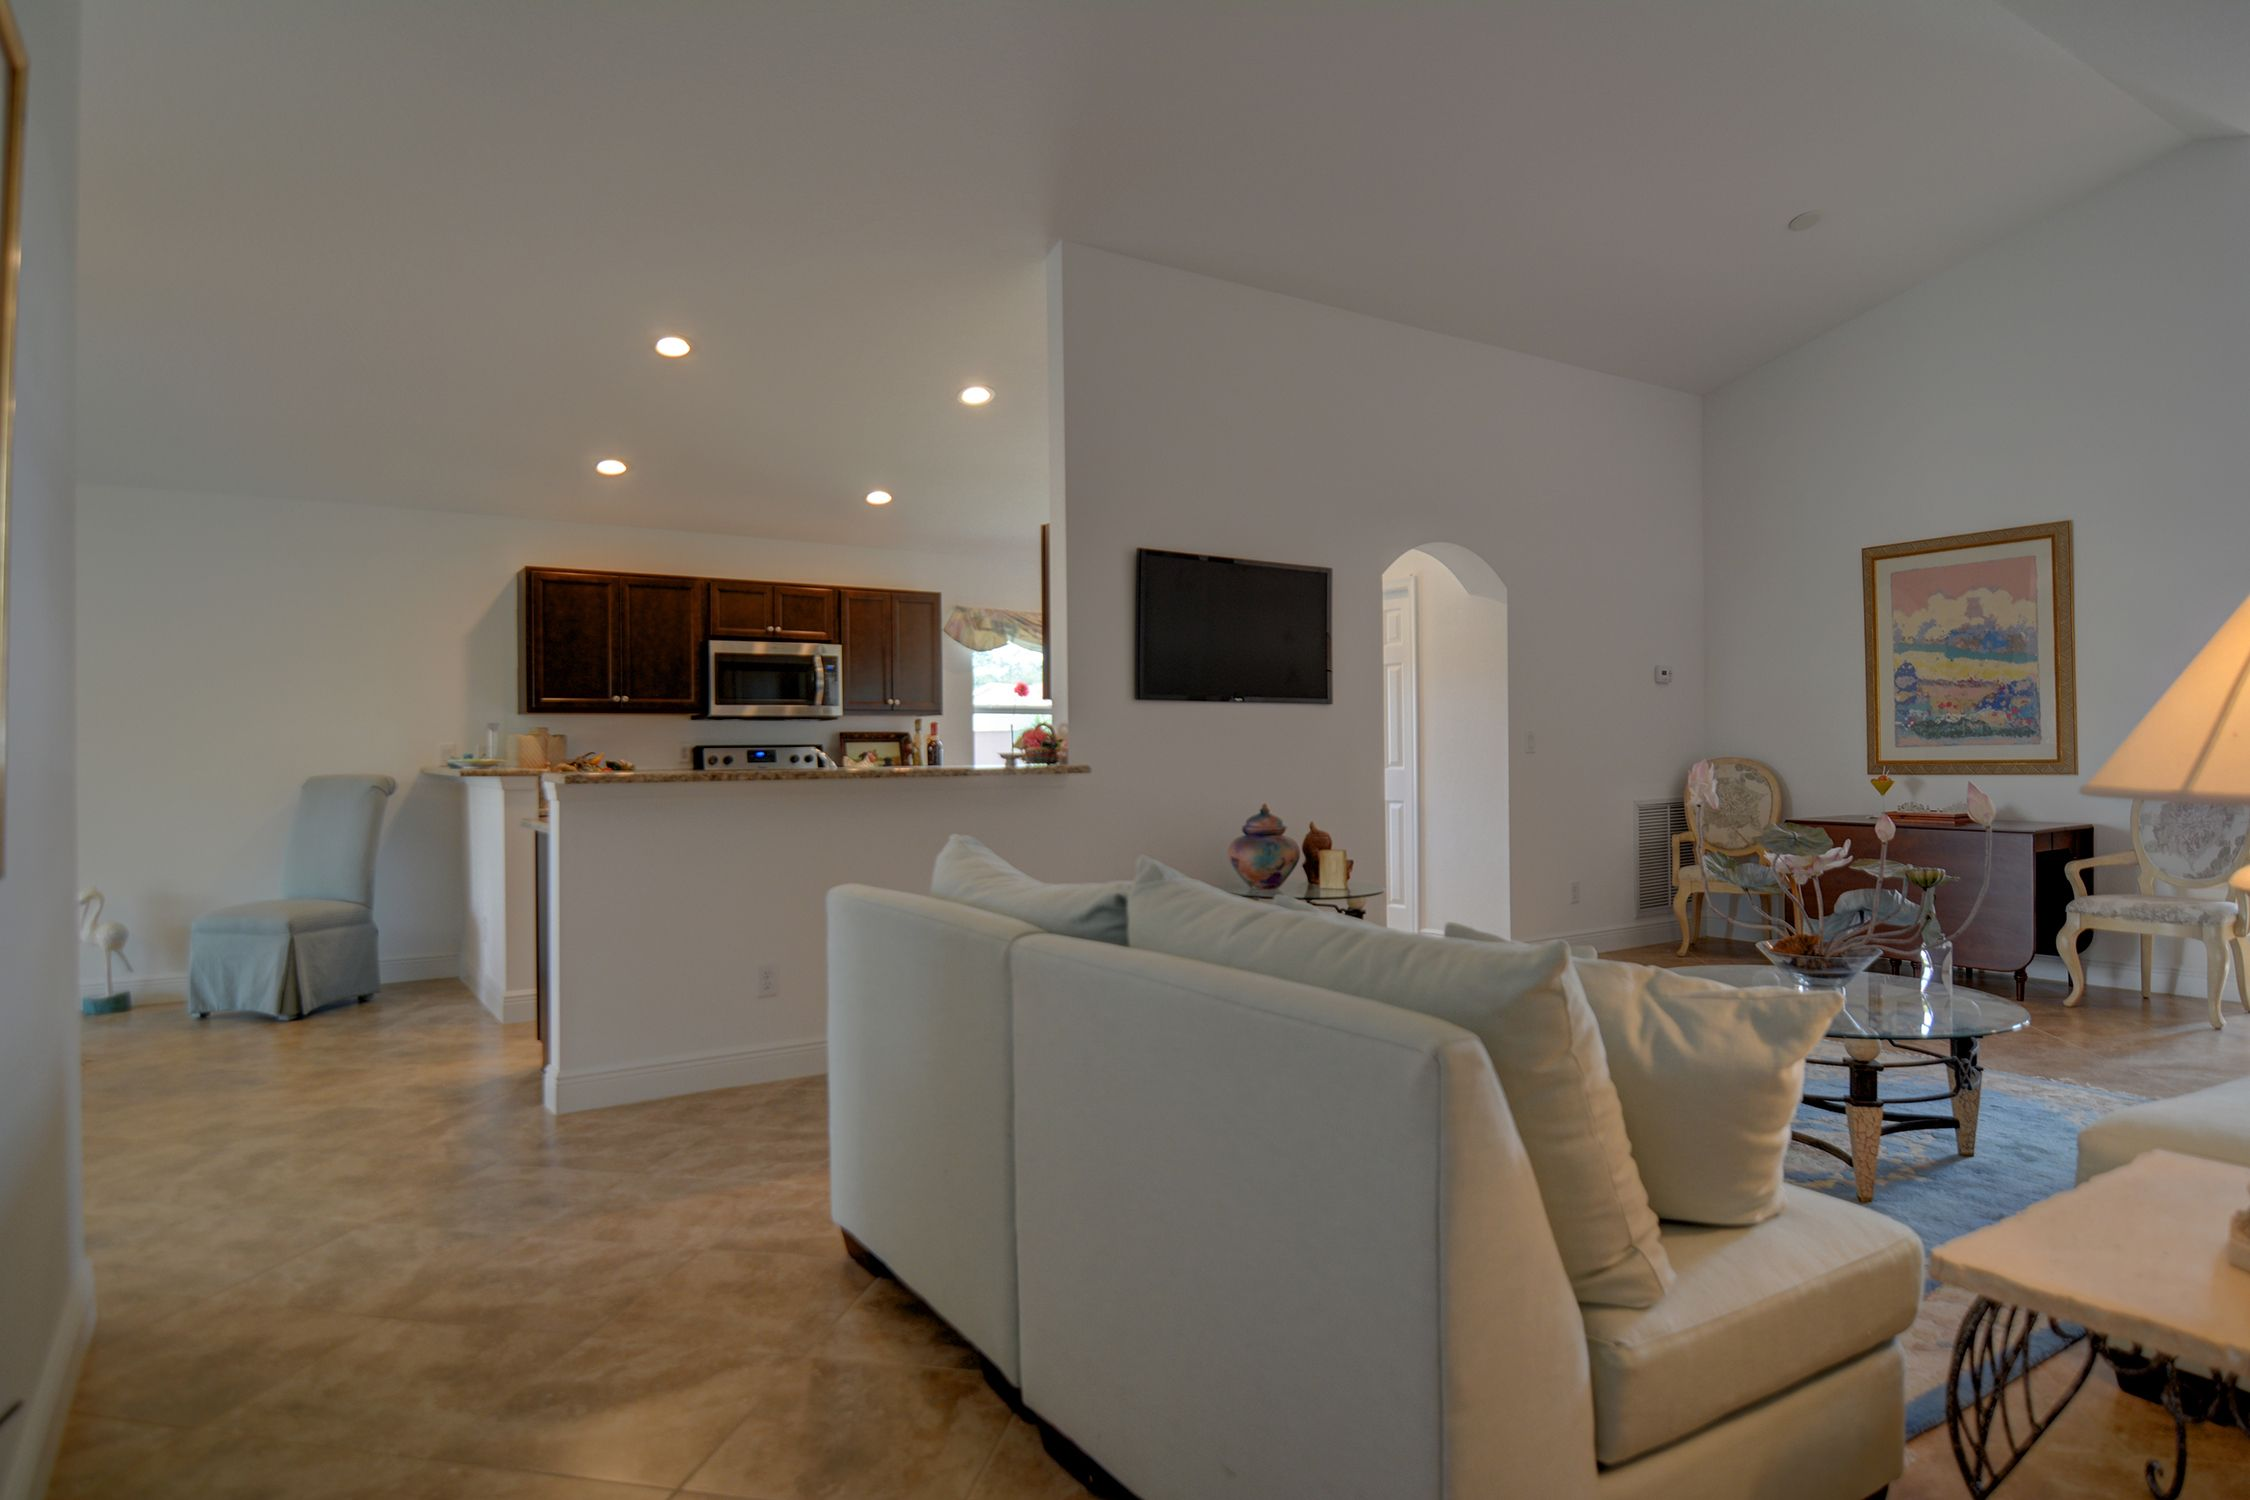 Living Area featured in the Cayman 1763 By Renar Homes in Martin-St. Lucie-Okeechobee Counties, FL